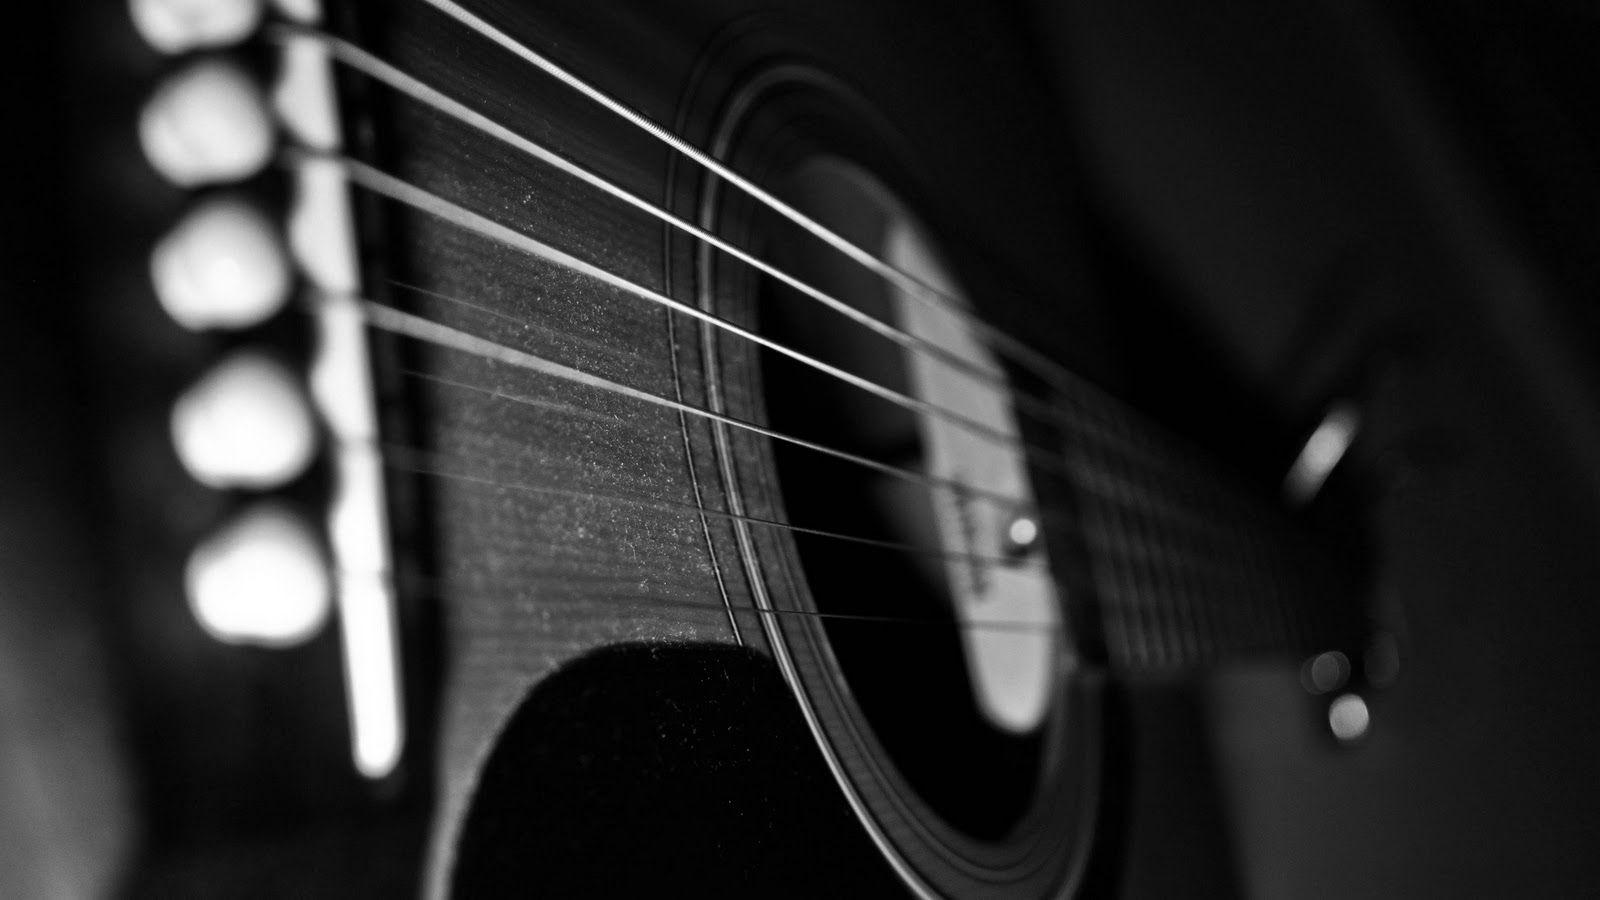 Wallpapers For > Black Acoustic Guitar Wallpapers Hd